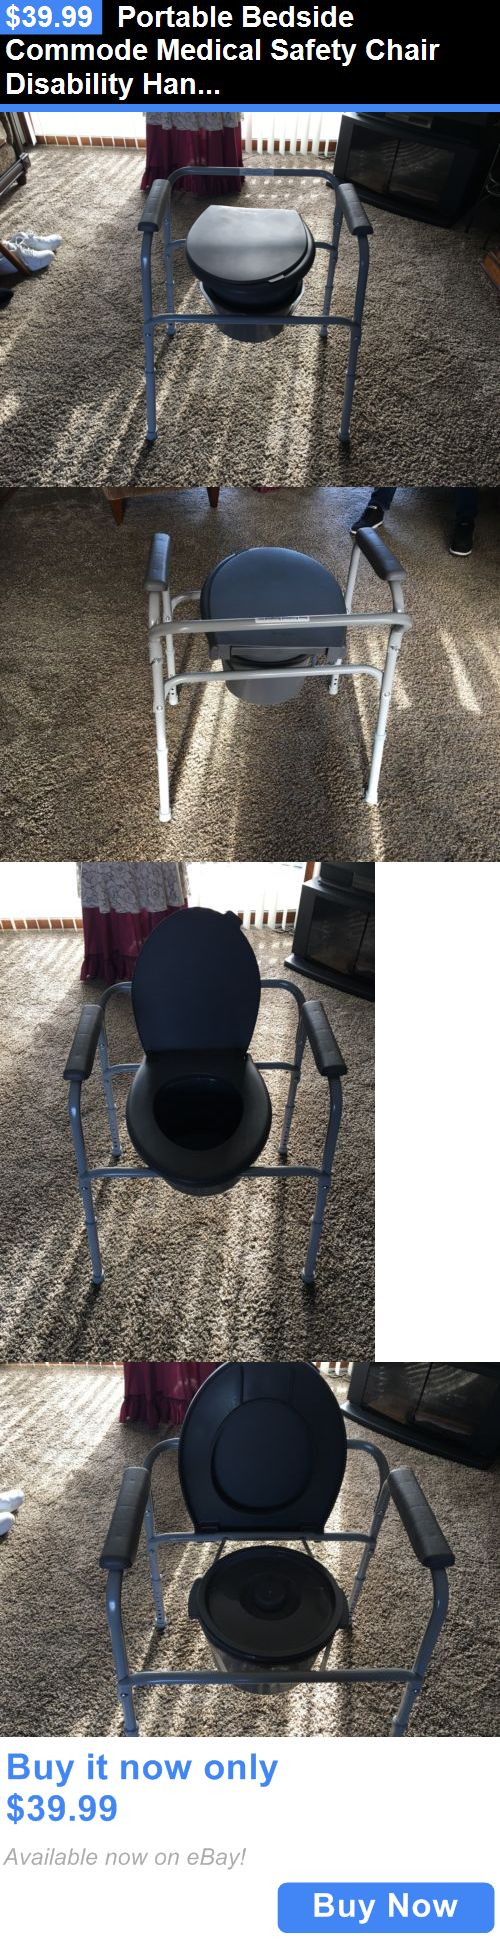 Portable commode folding bedside handicap adult toilet potty chair - Toilet Frames And Commodes Portable Bedside Commode Medical Safety Chair Disability Handicap Toilet Buy It